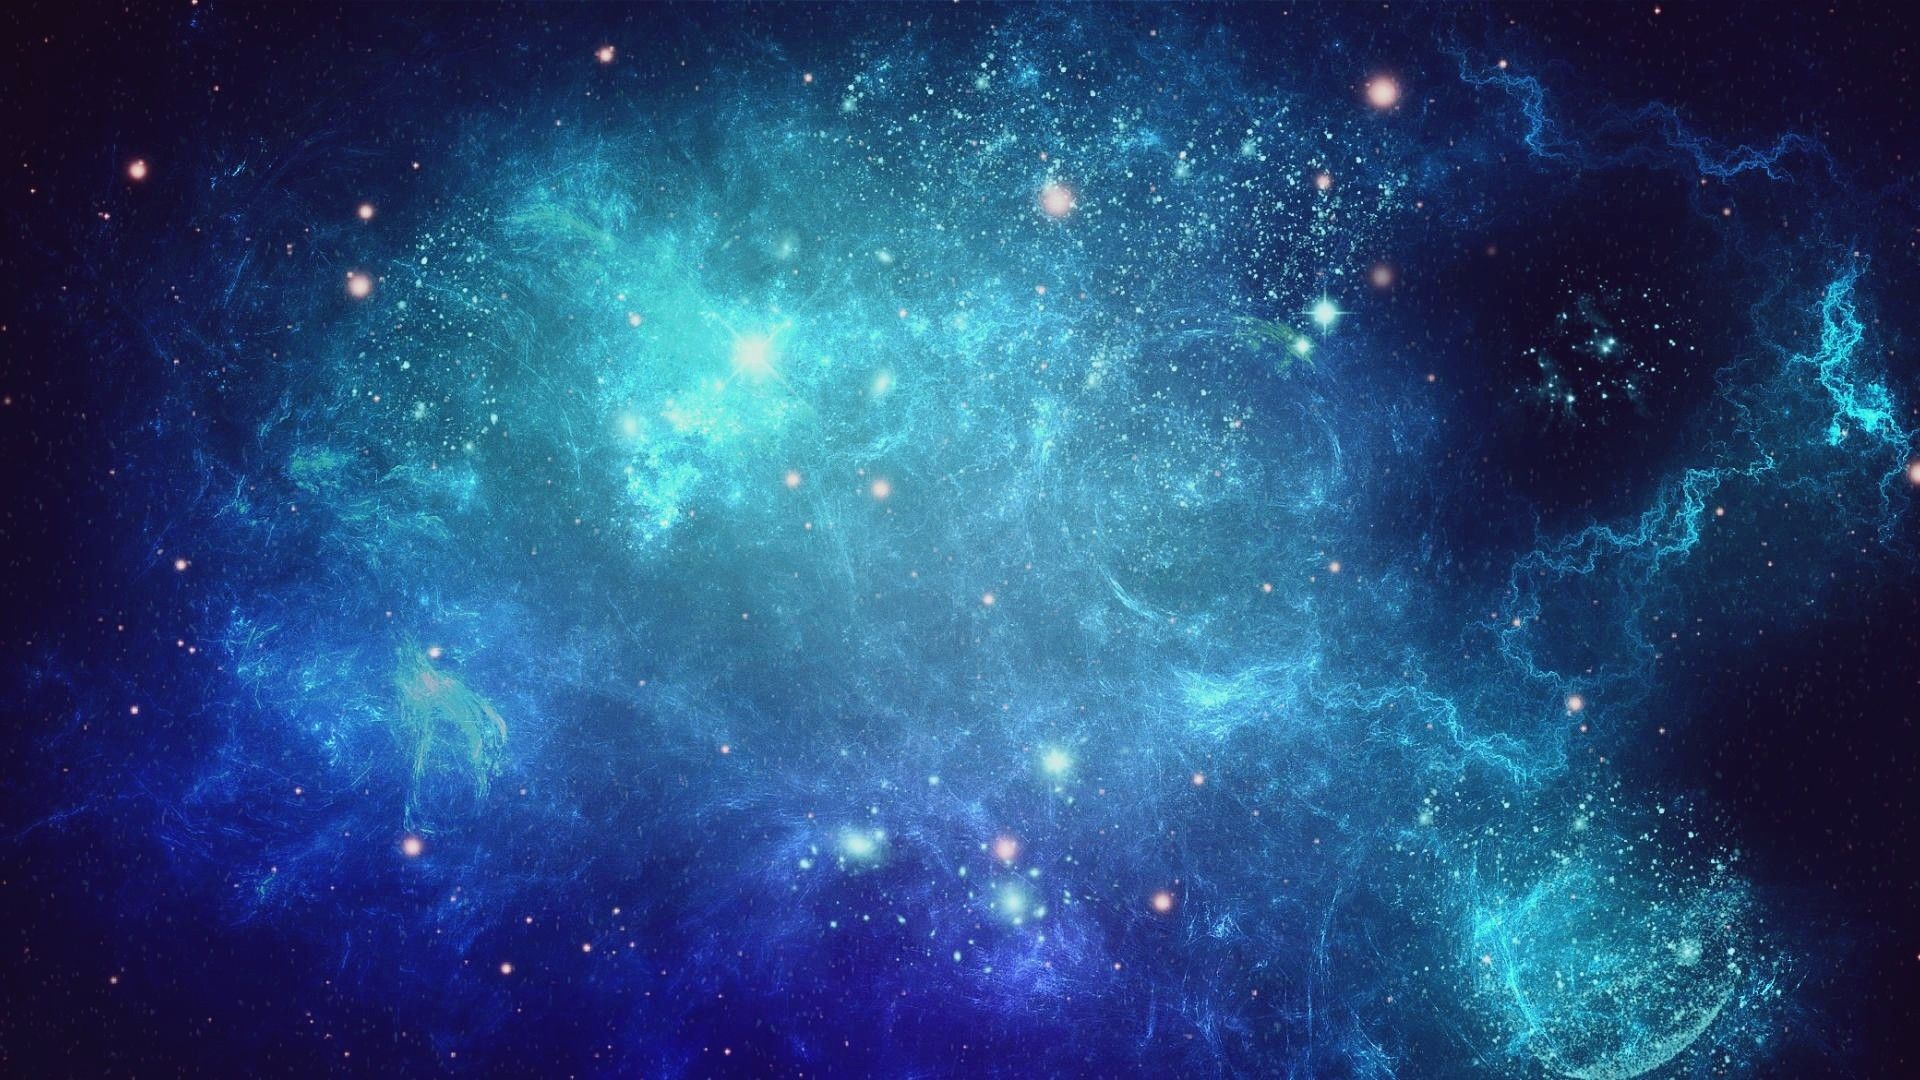 81 HD Cosmic wallpapers for your mobile devices |Outer Space Wallpaper 1920x1080